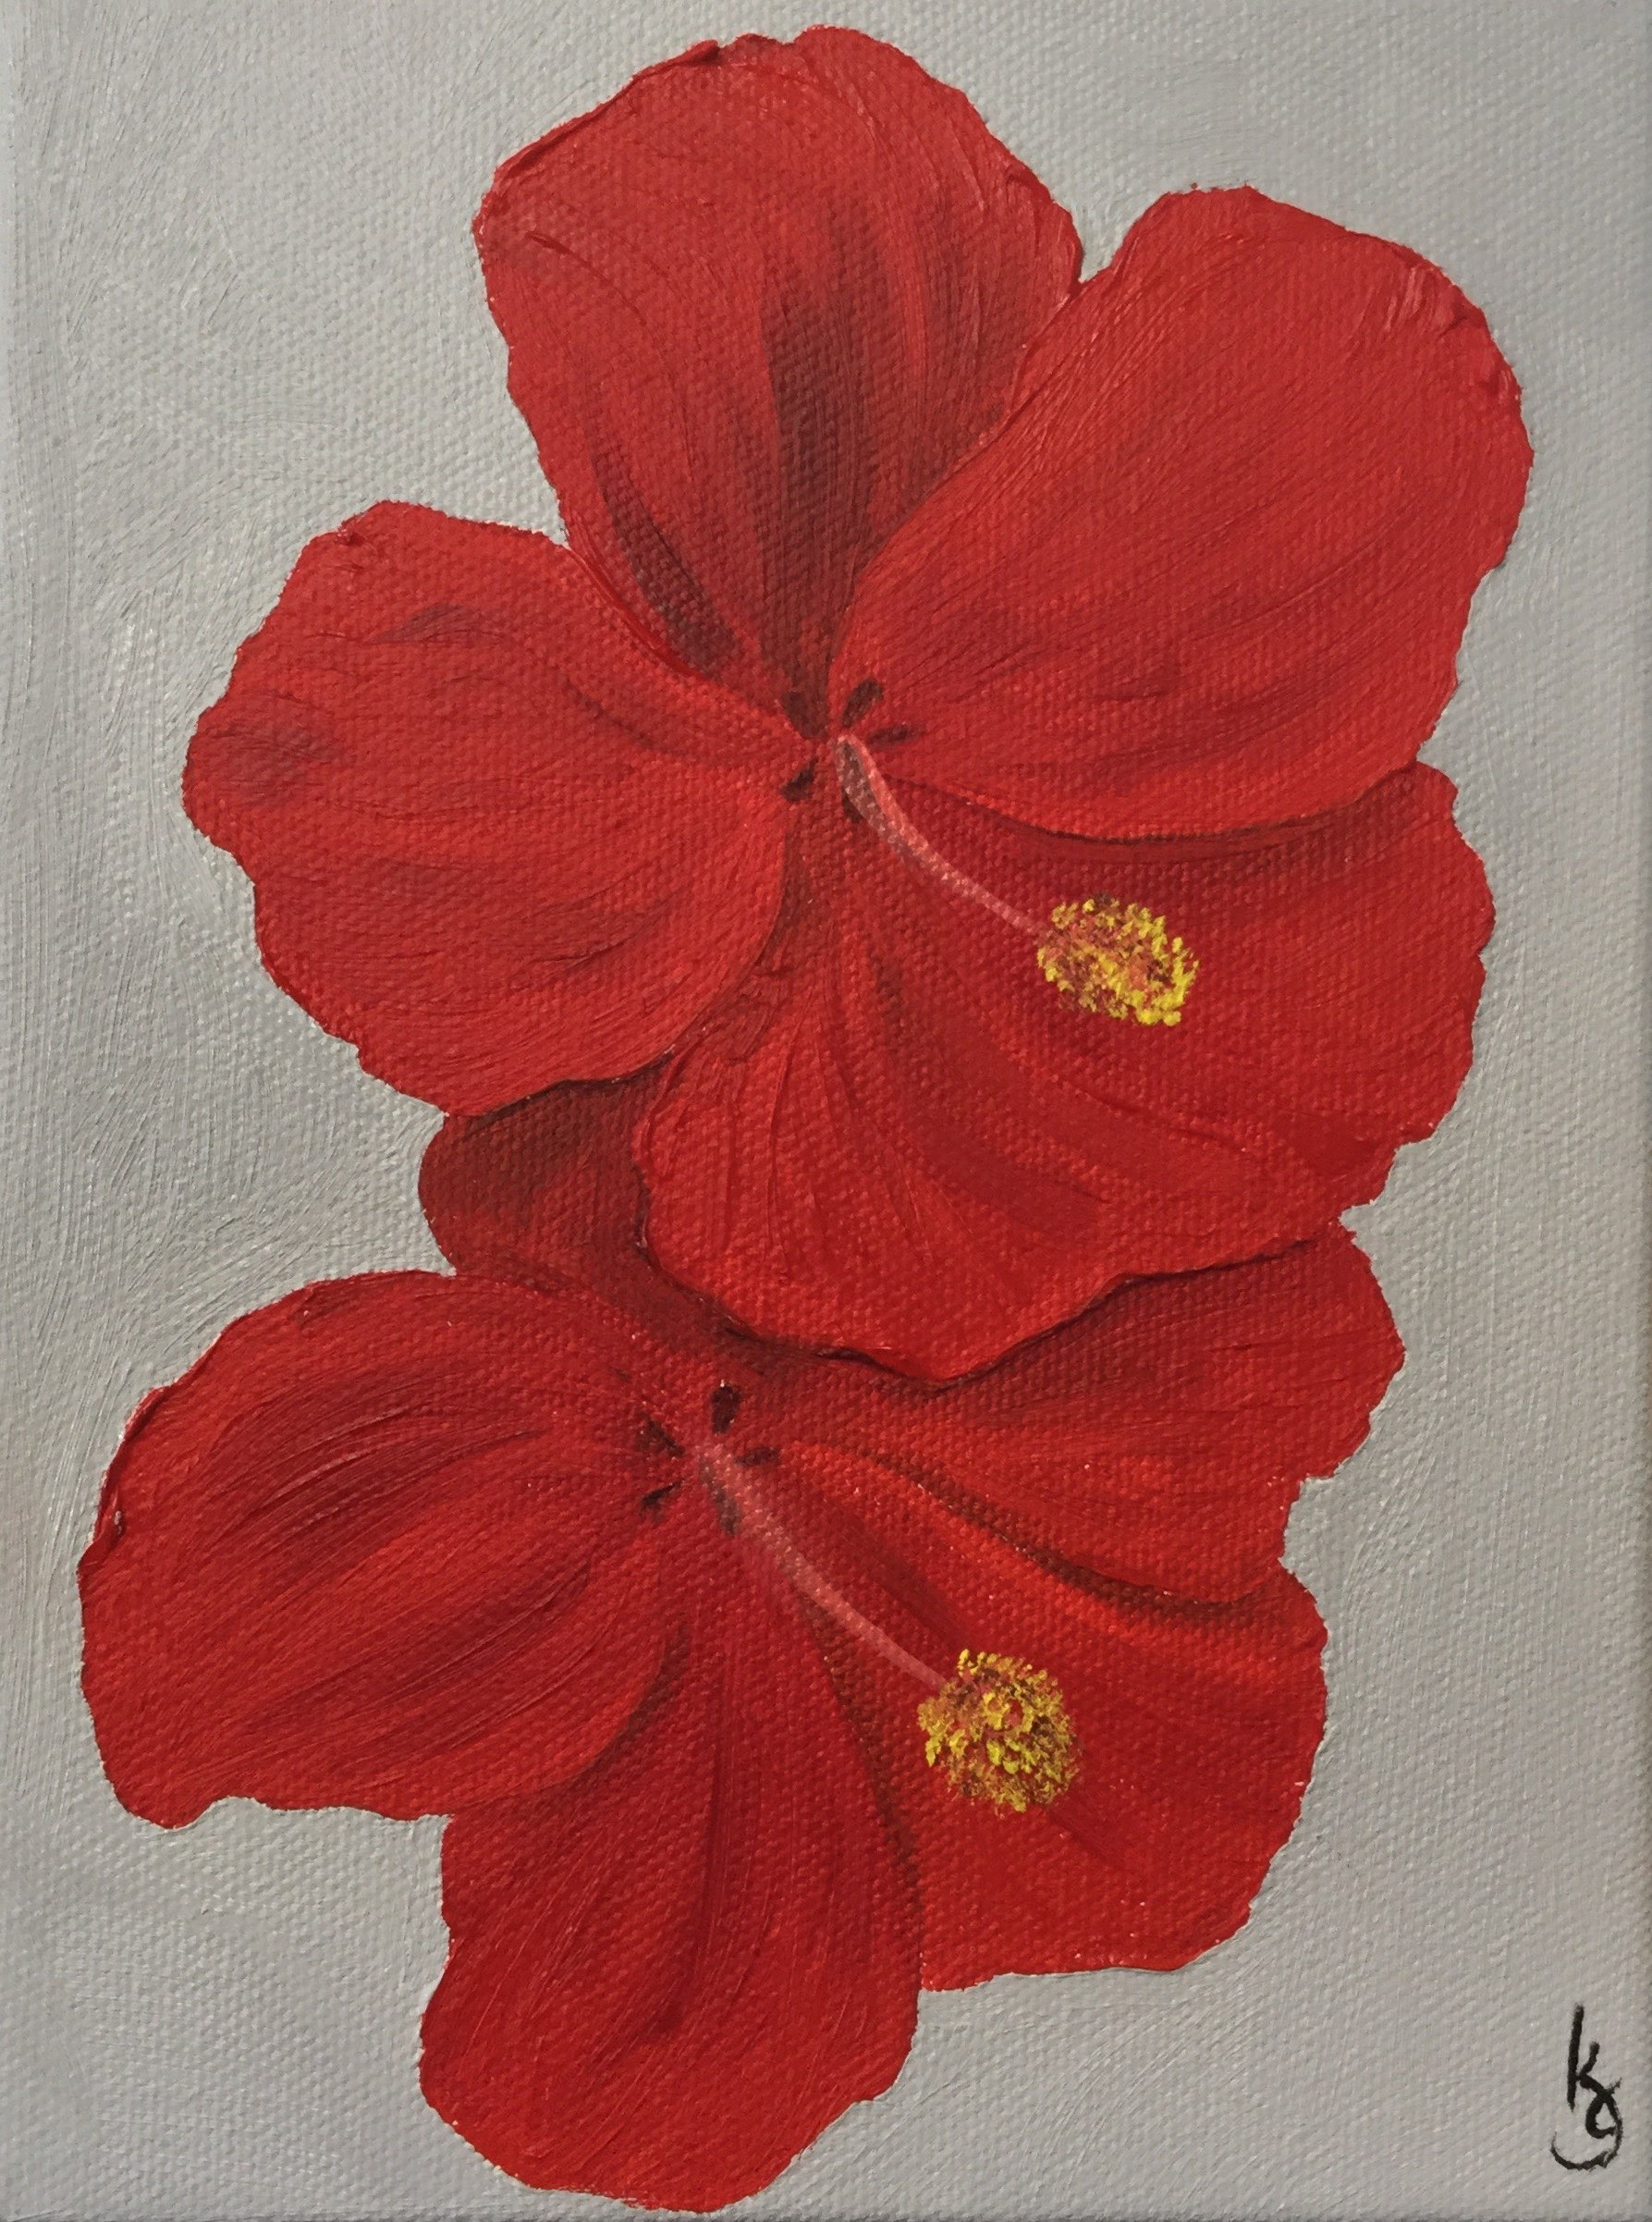 Red Hibiscus , 2017 86251771217 Oil on canvas 8 x 6 x 1.5 inches